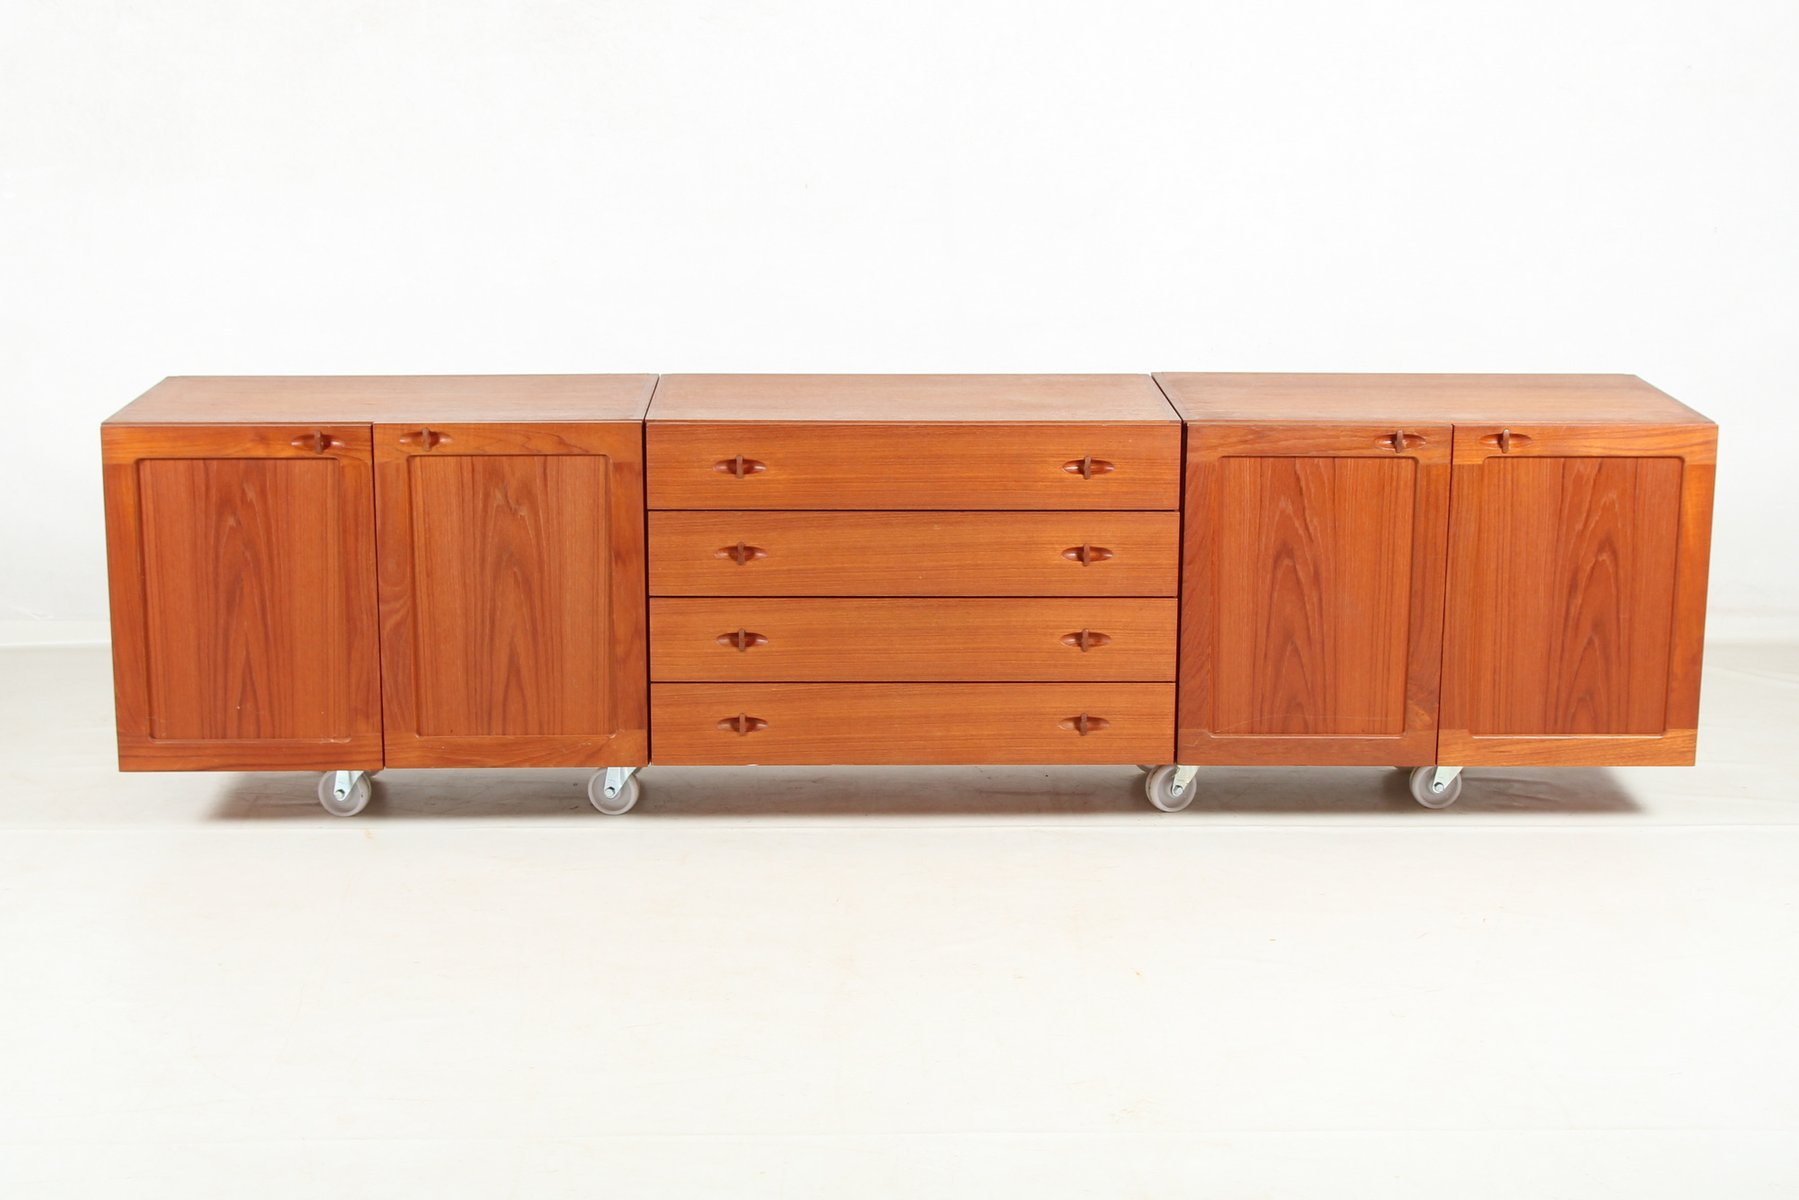 modulares d nisches vintage sideboard in teak furnier bei pamono kaufen. Black Bedroom Furniture Sets. Home Design Ideas